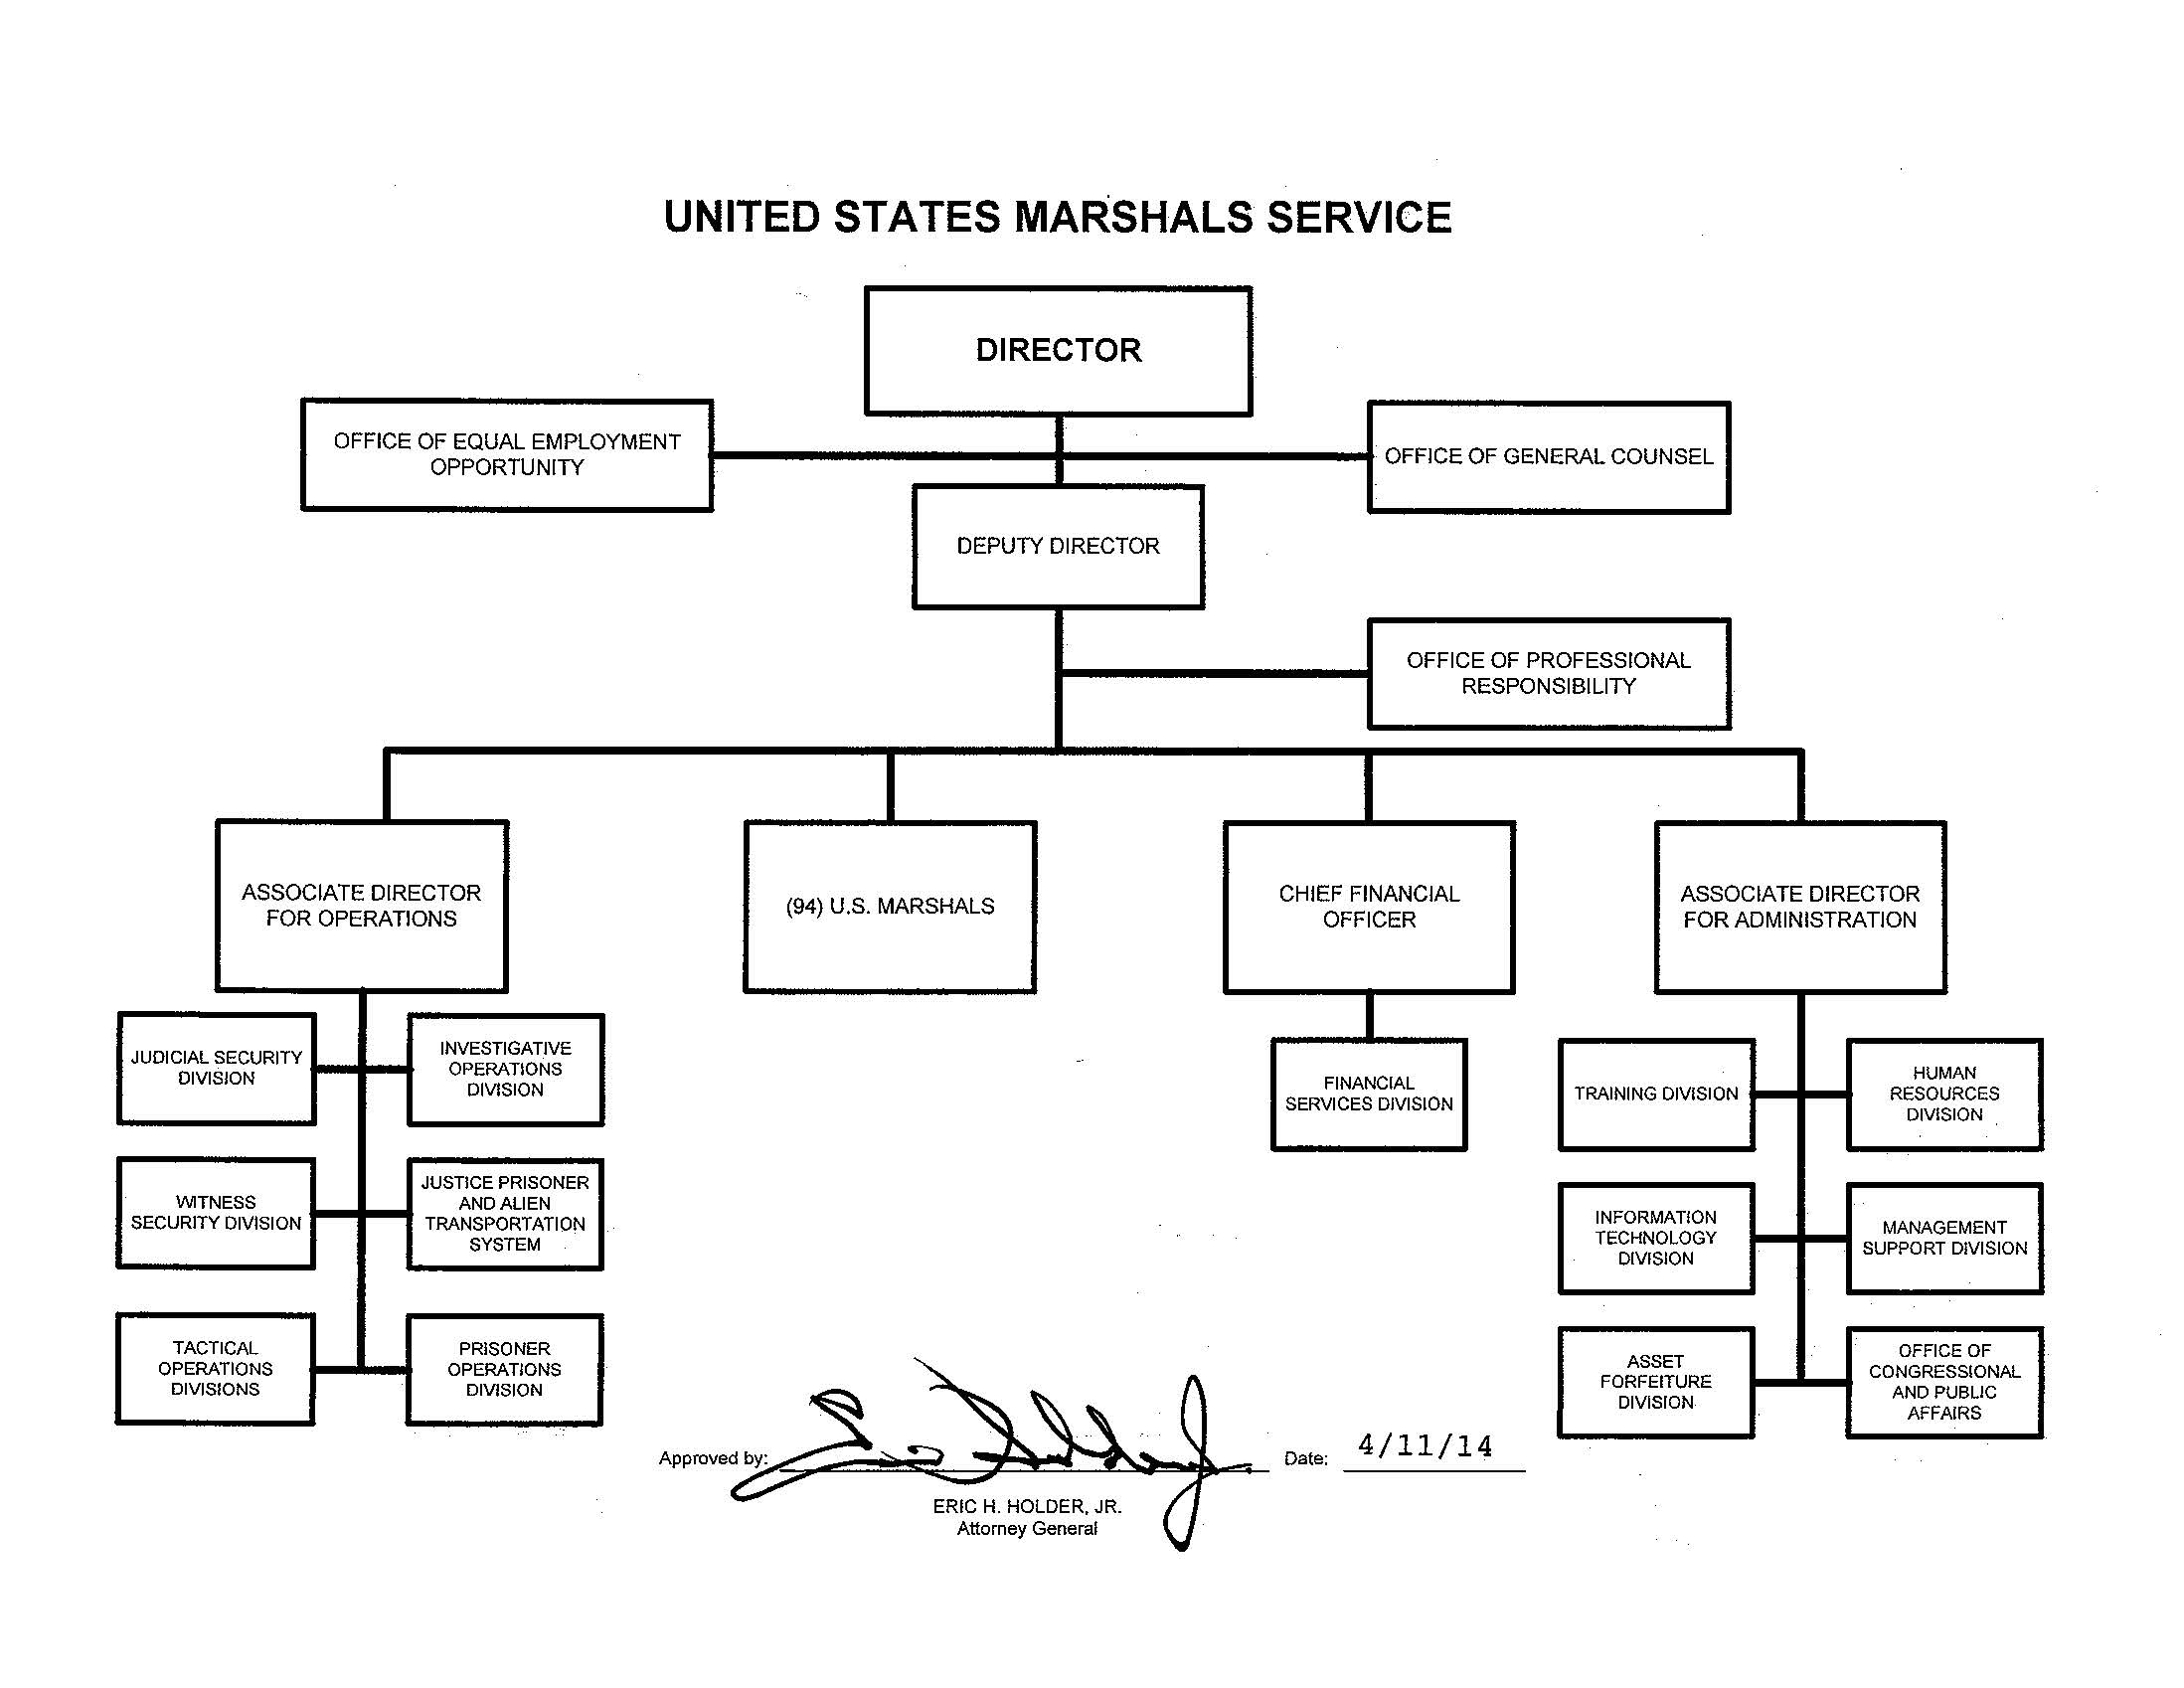 judicial branch court system diagram of larynx with labeling service organizations based in the united states